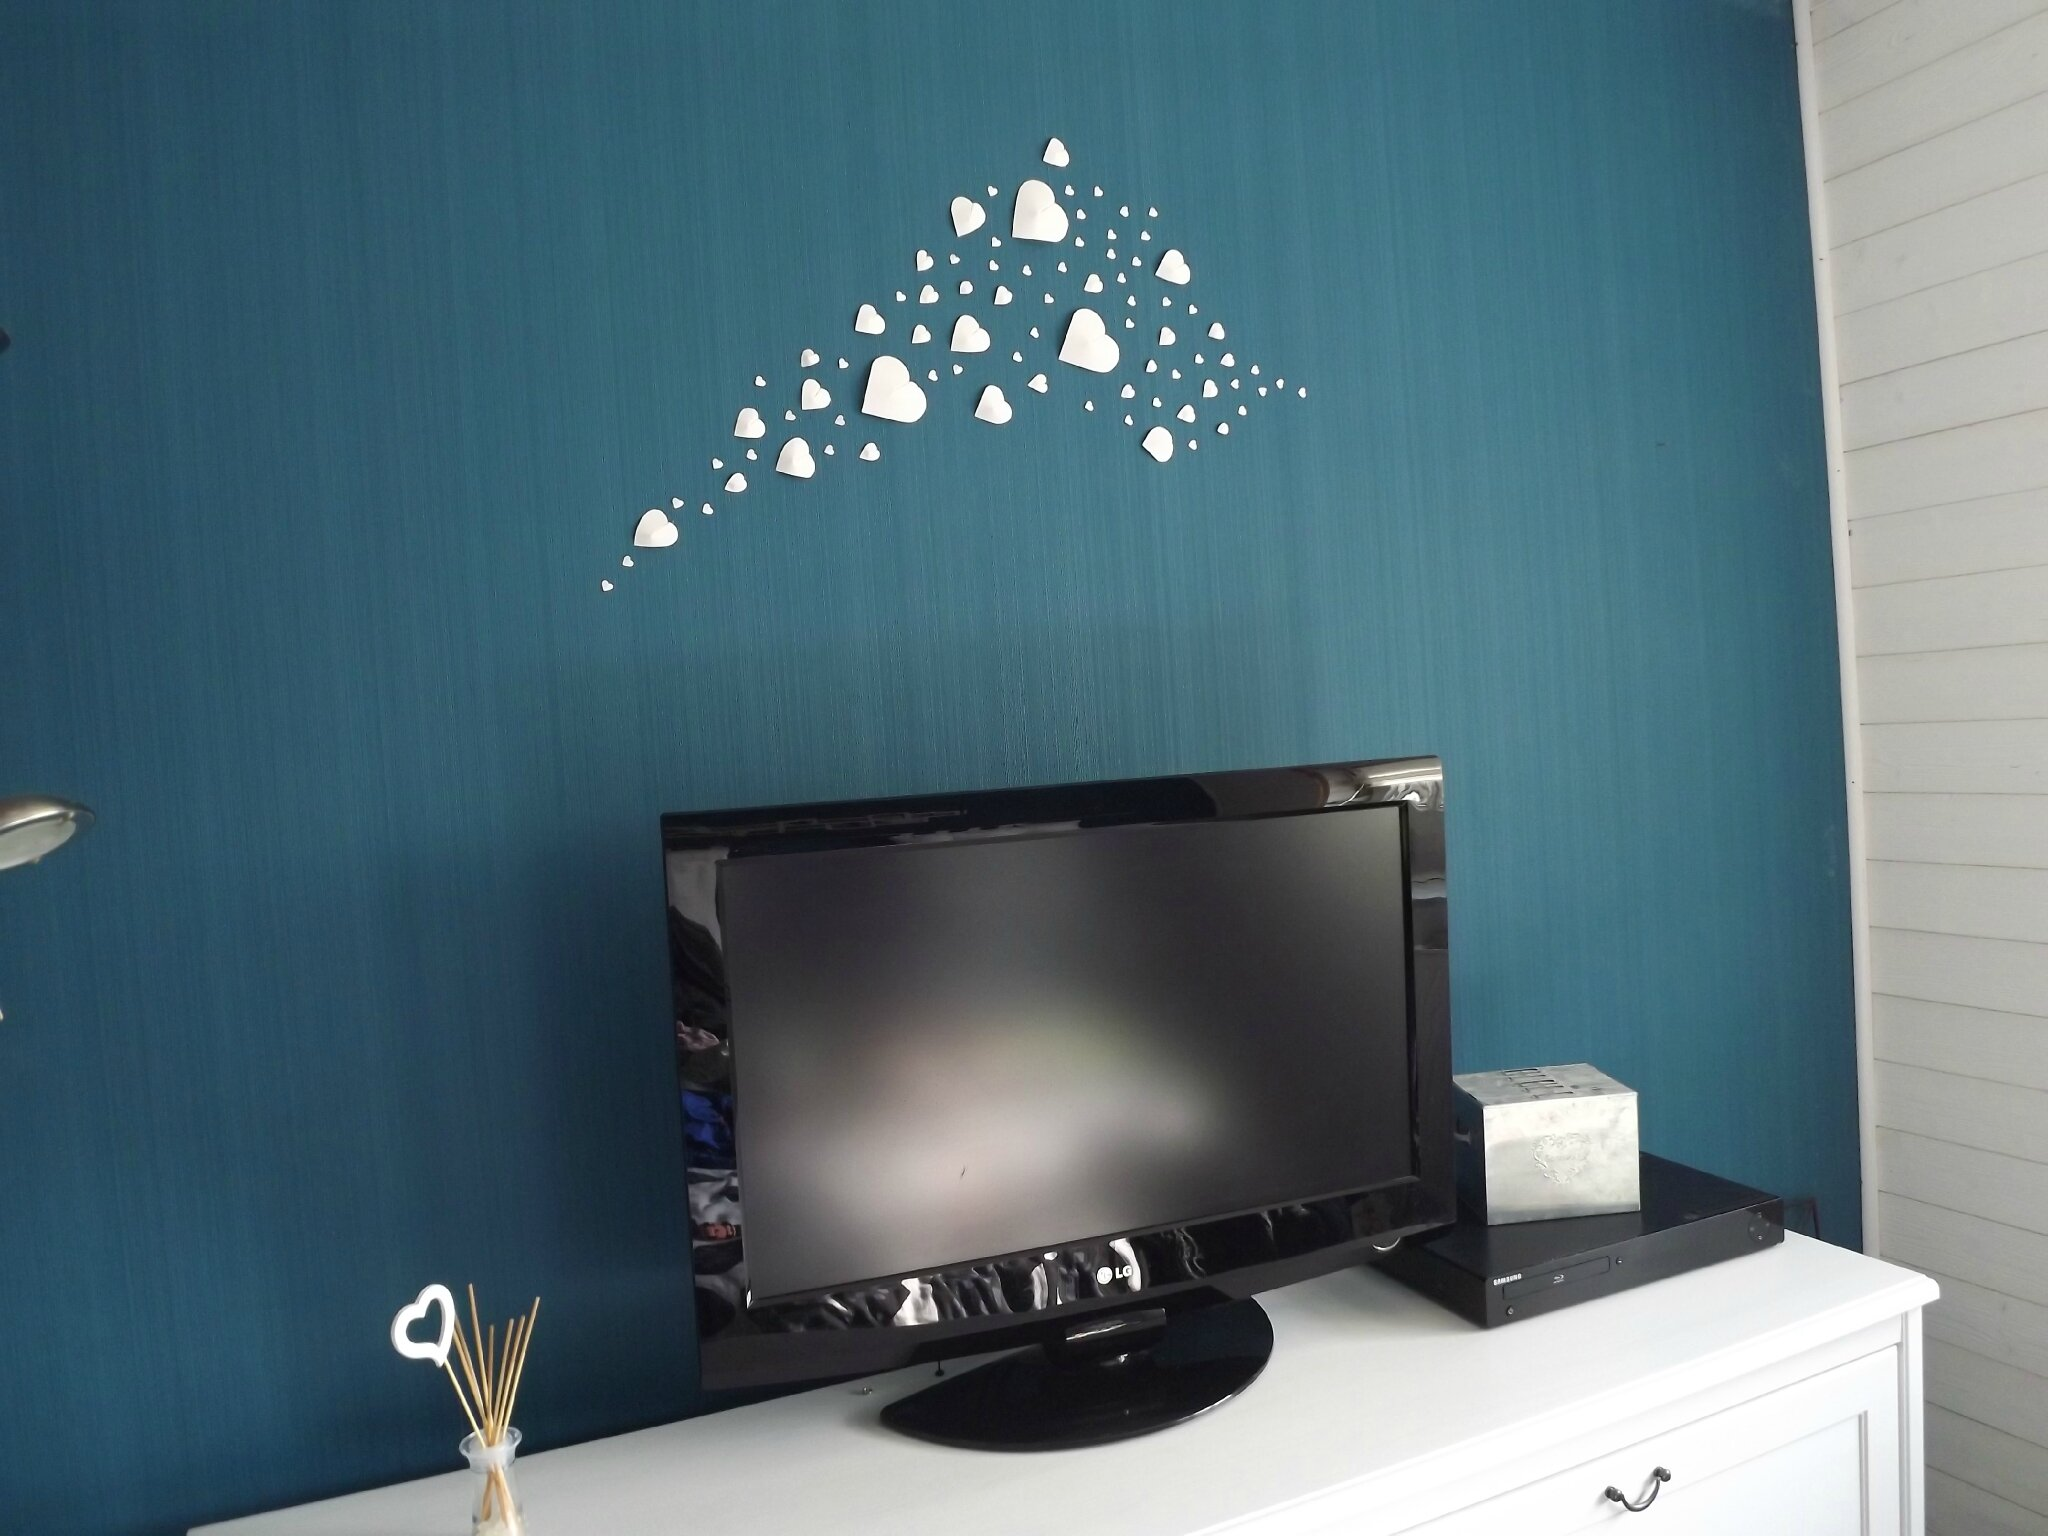 D co murale pas tr s banale un brin d 39 id es et de for Decoration murale diy